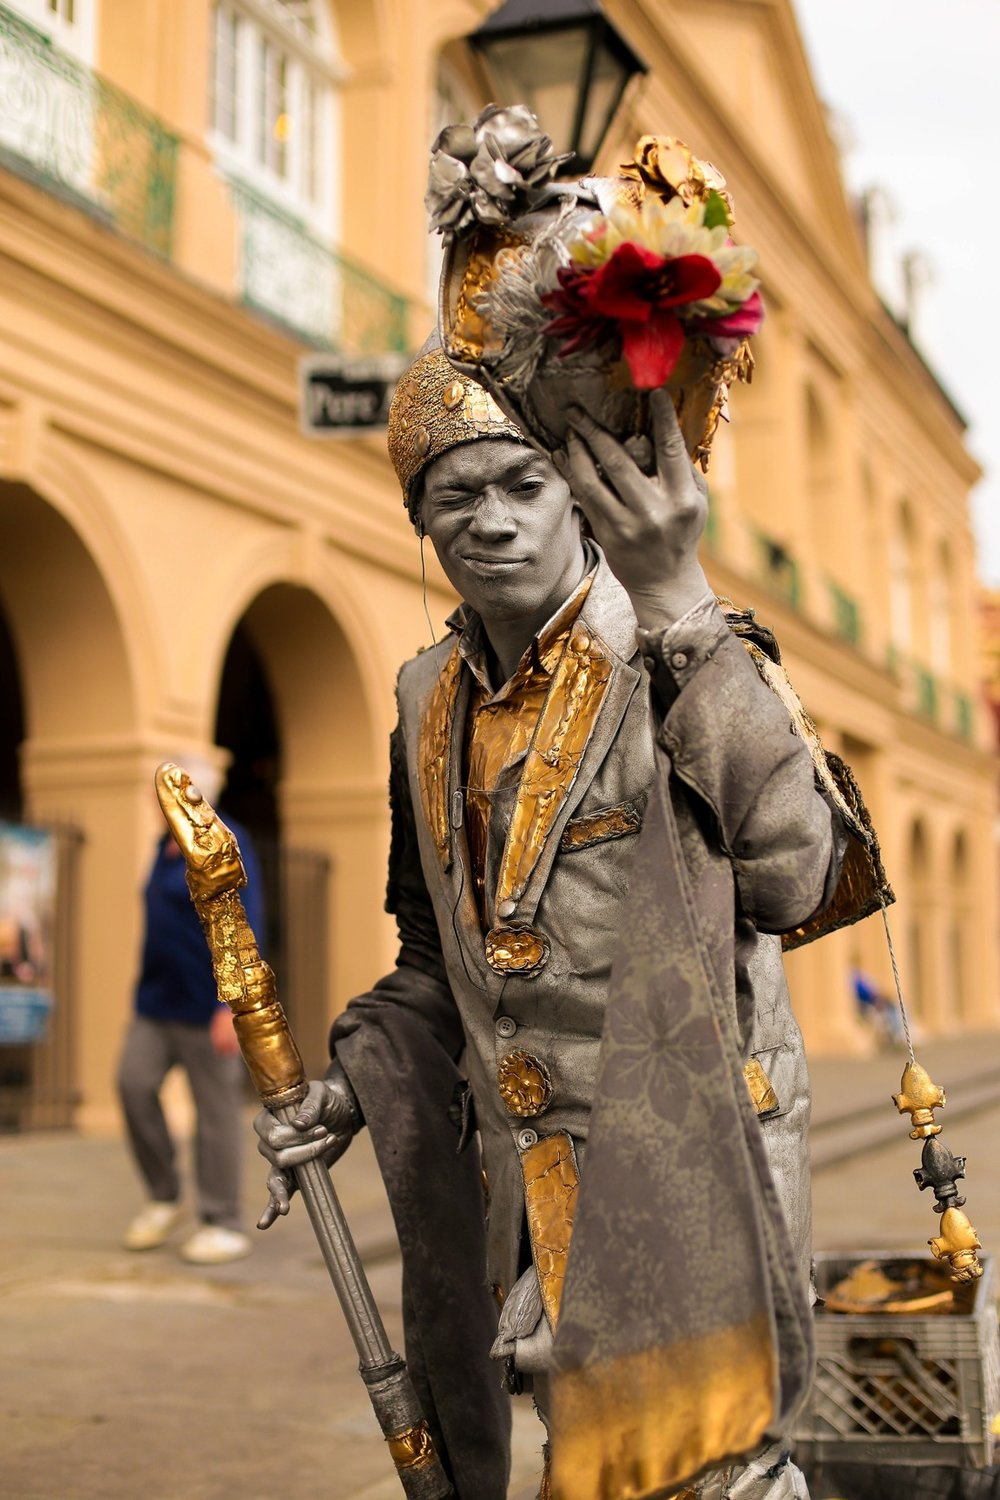 New Orleans Street Performer (Photo: Nathan Bingle)